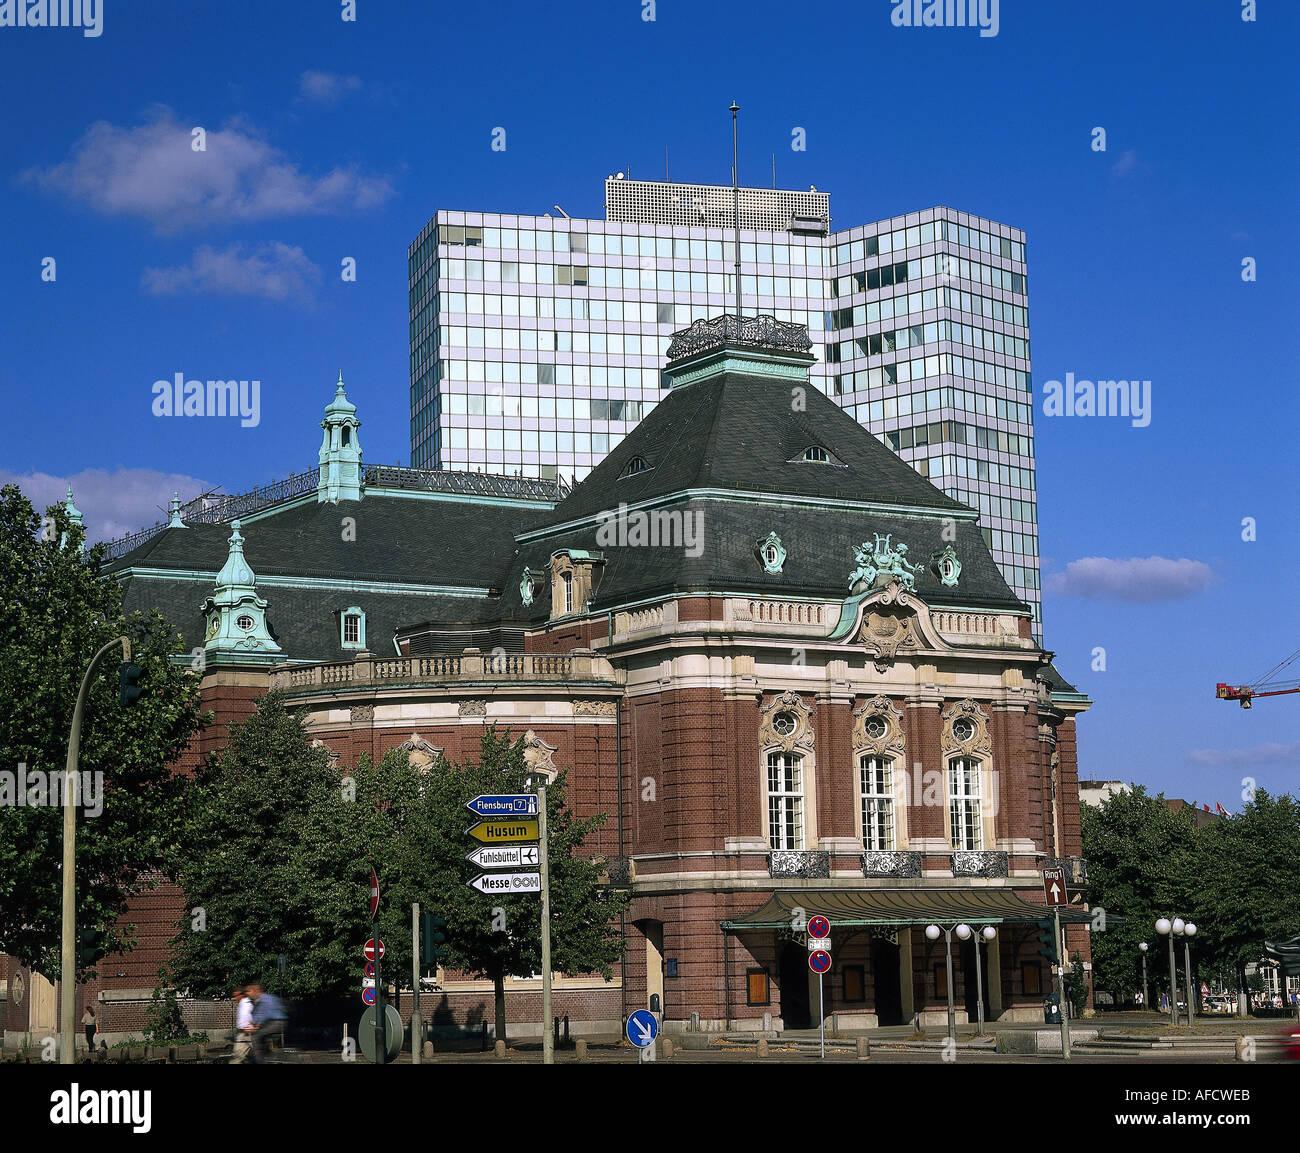 geography / travel, Germany, Hamburg, Musikhalle, music hall in front of Unilever skyscraper, - Stock Image